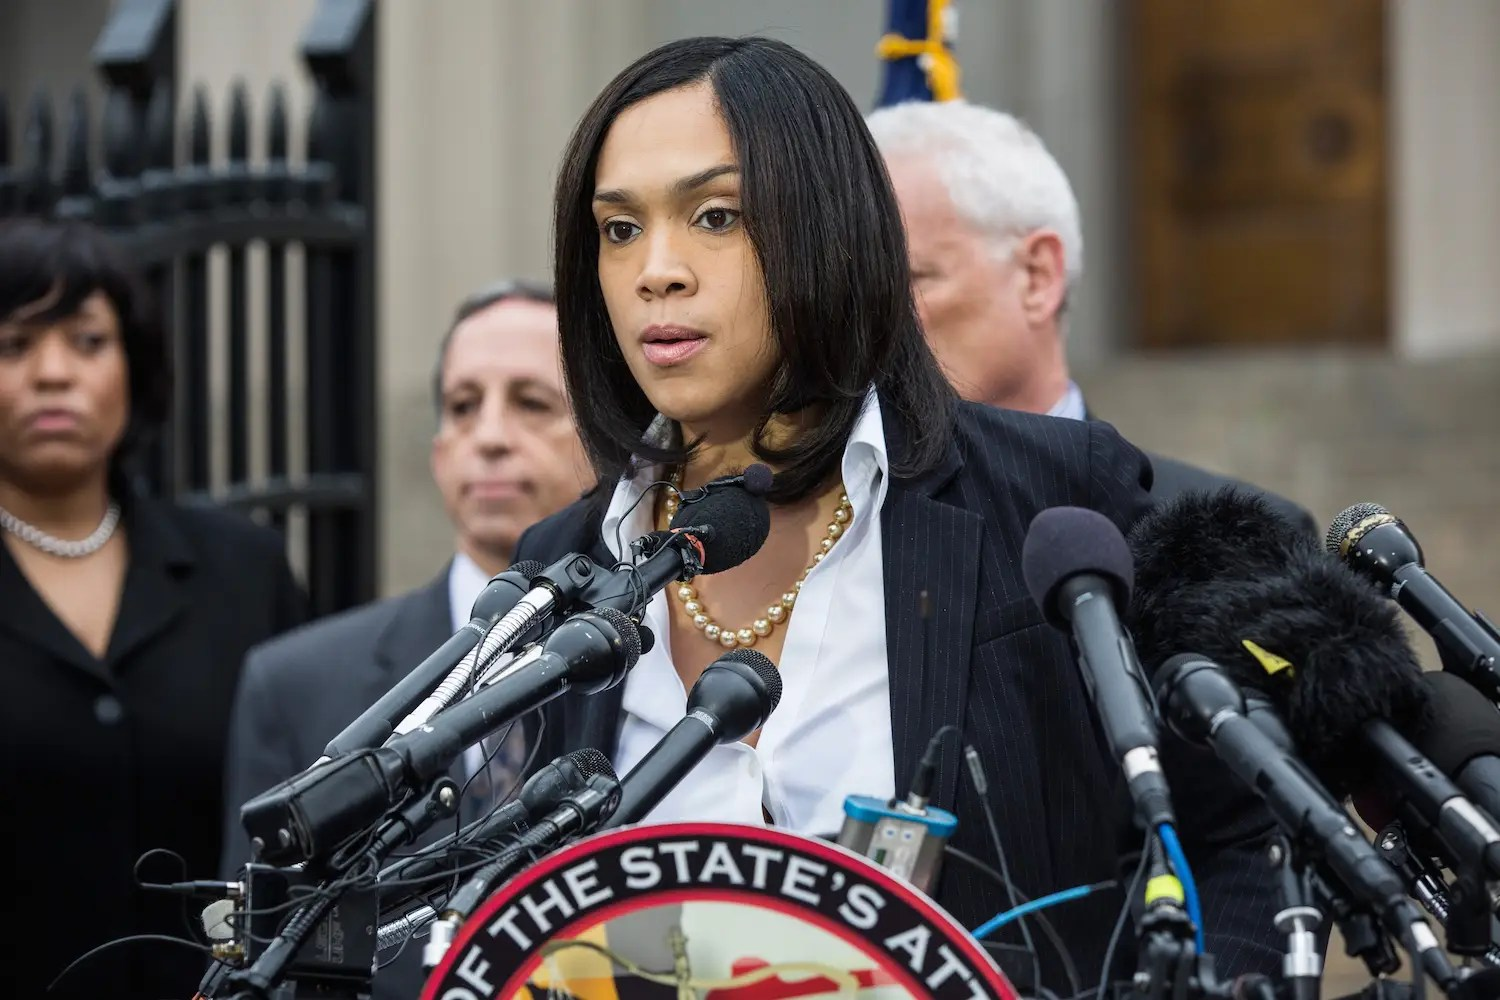 Baltimore City Attorney Marilyn Mosby